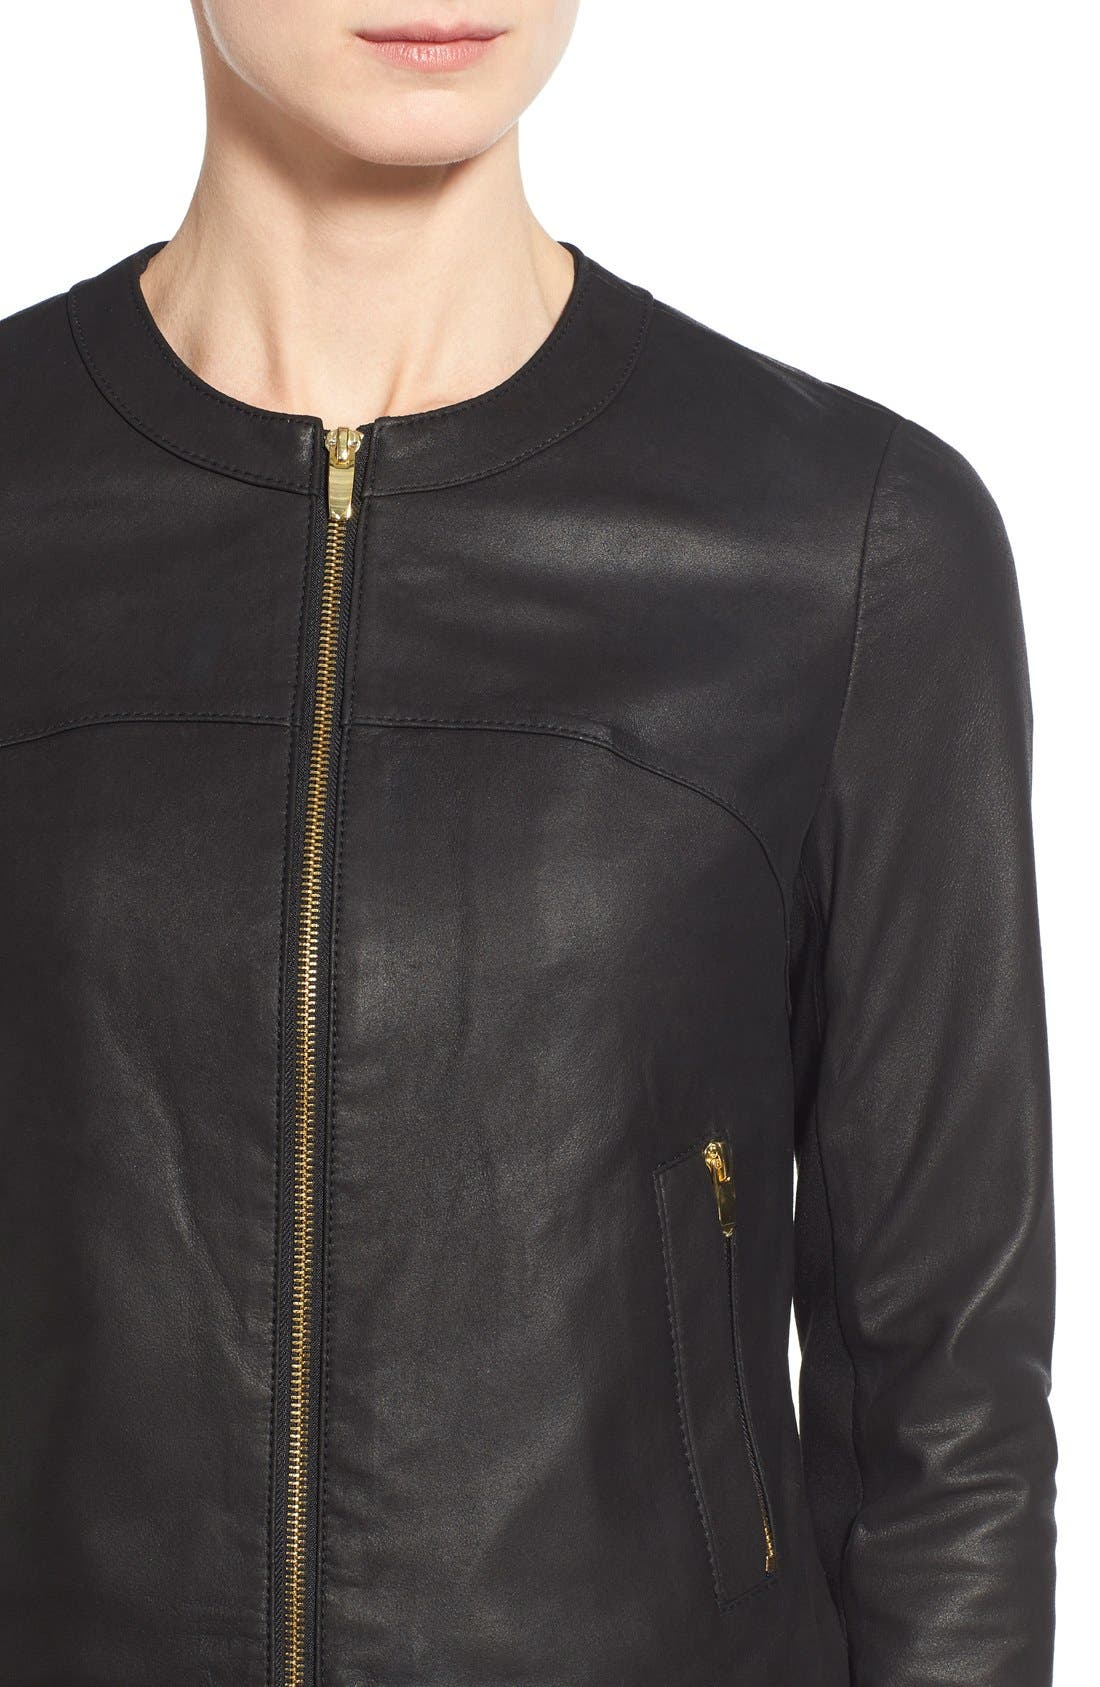 Lambskin Leather & Knit Zip Front Collarless Jacket,                             Alternate thumbnail 4, color,                             Black